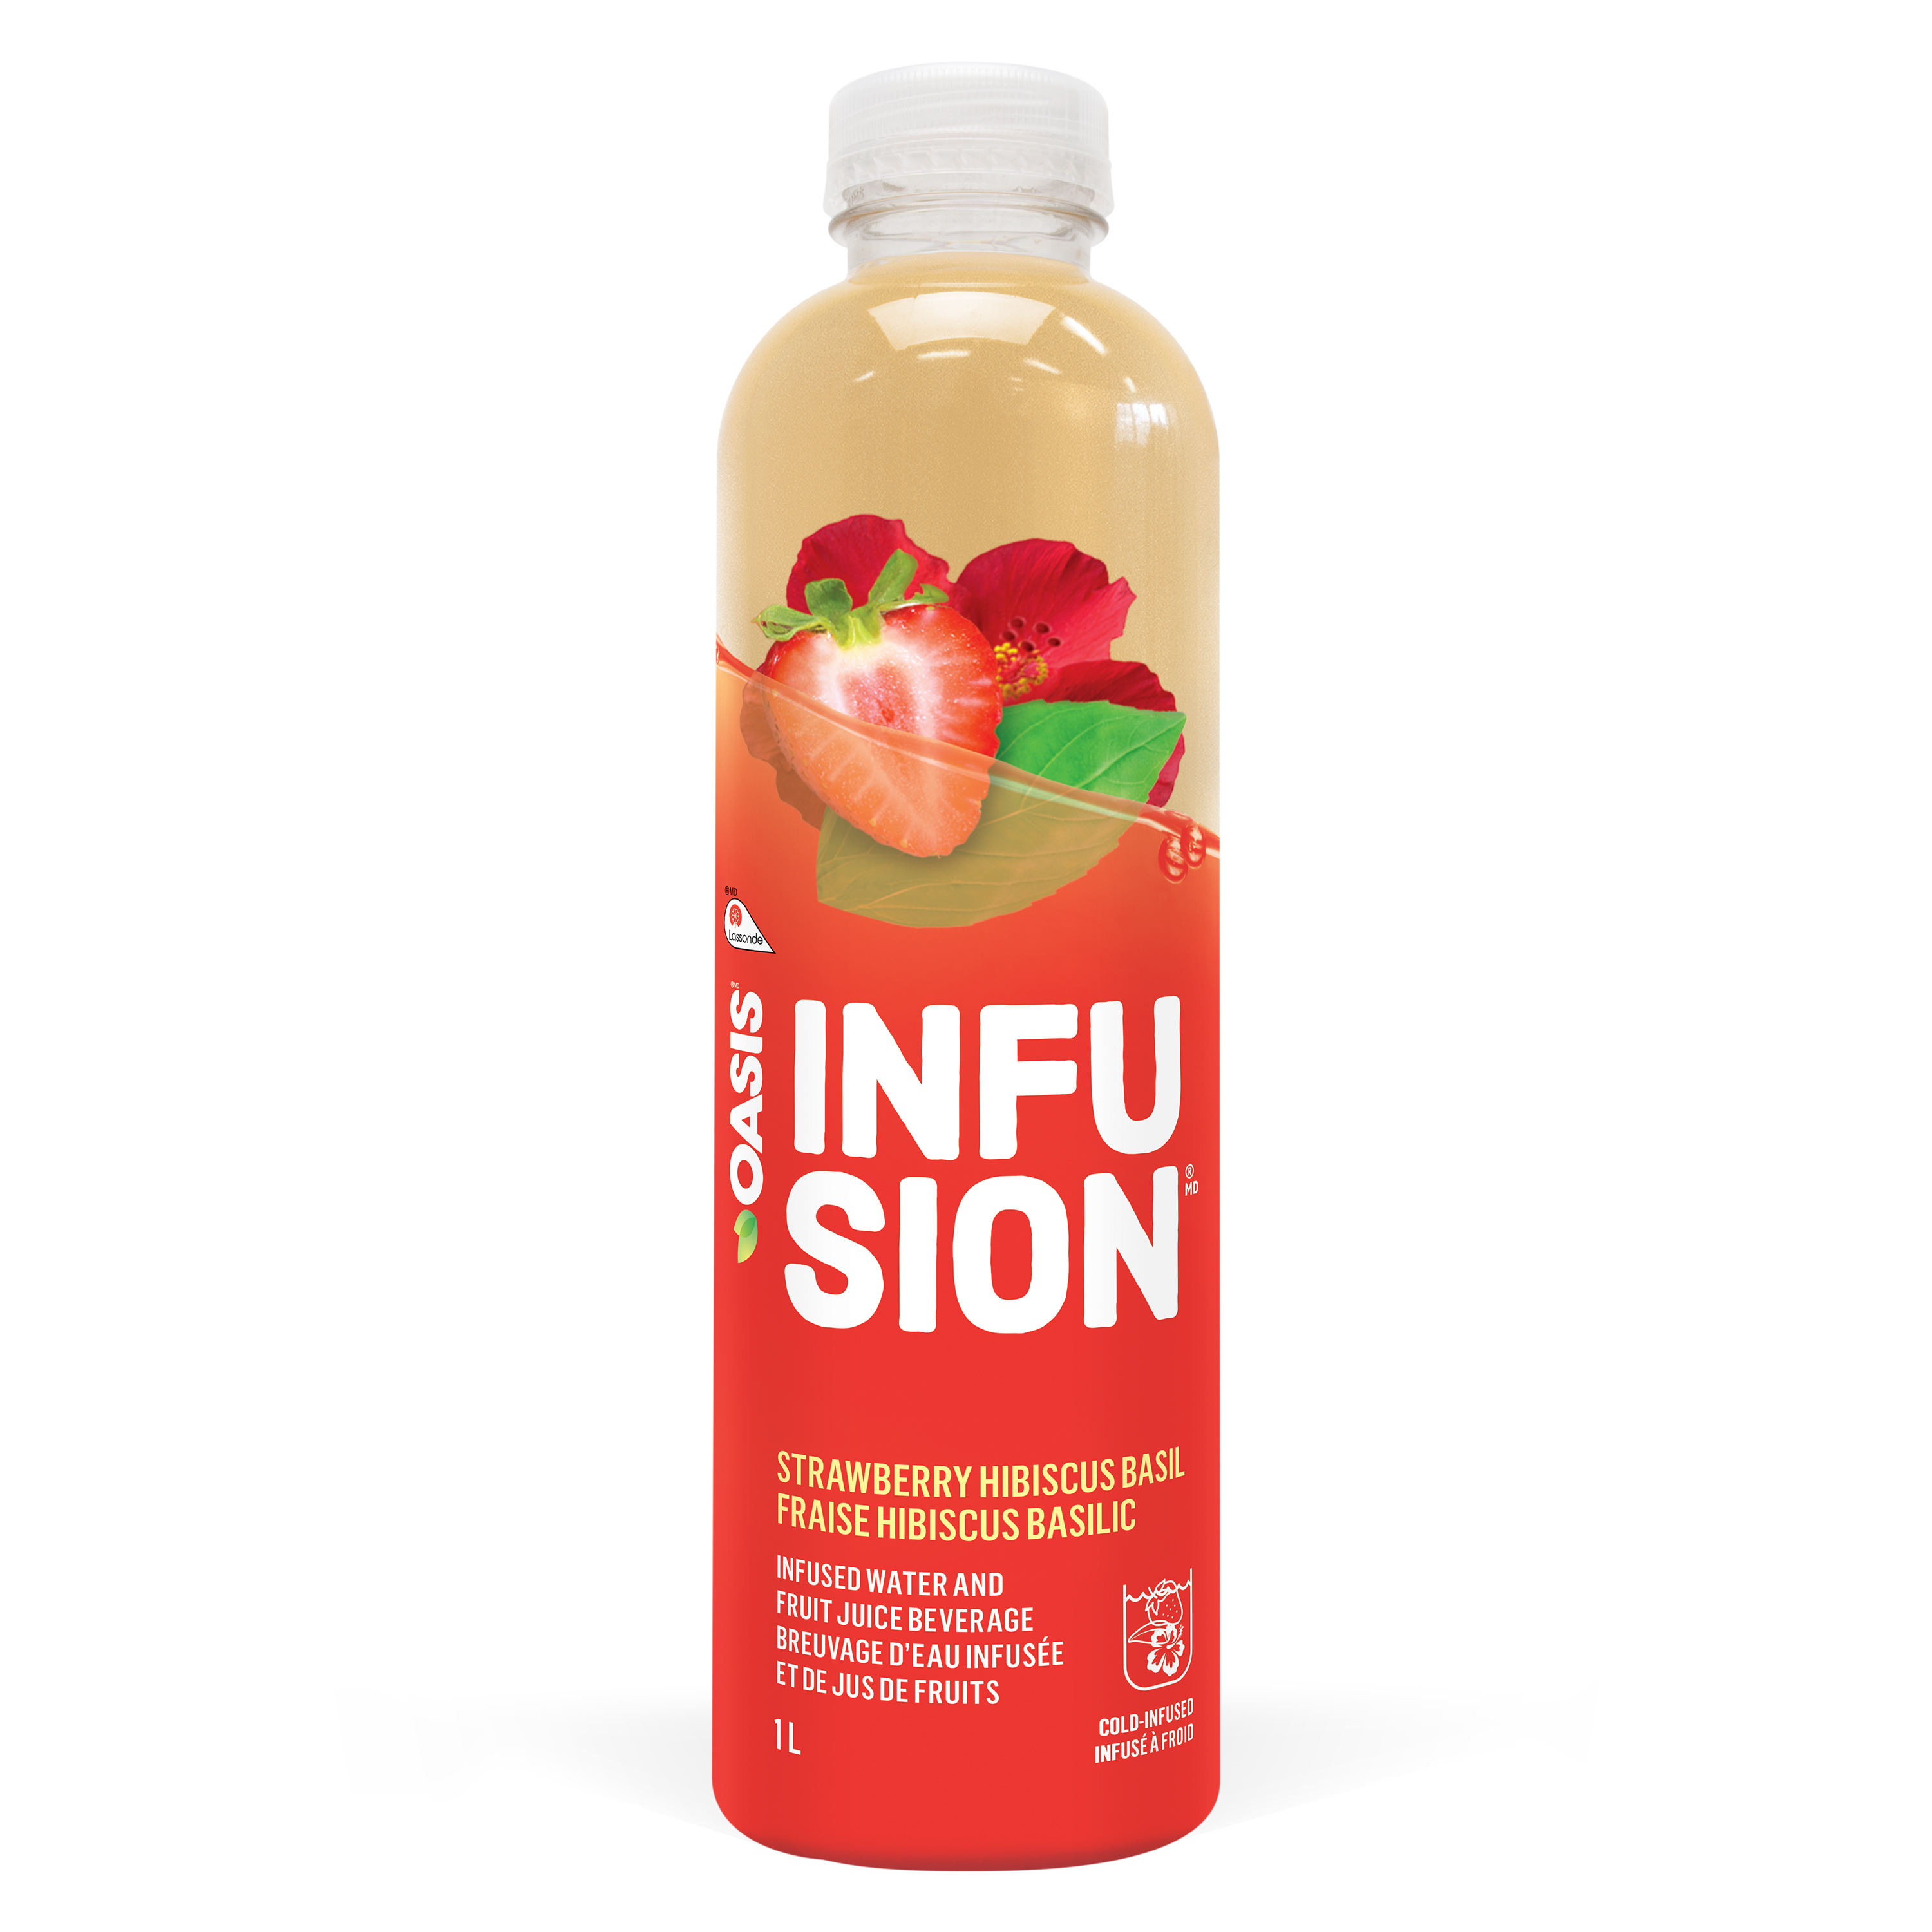 OASIS INFUSION STRAWBERRY - HIBISCUS - BASIL Plastic PET 1L